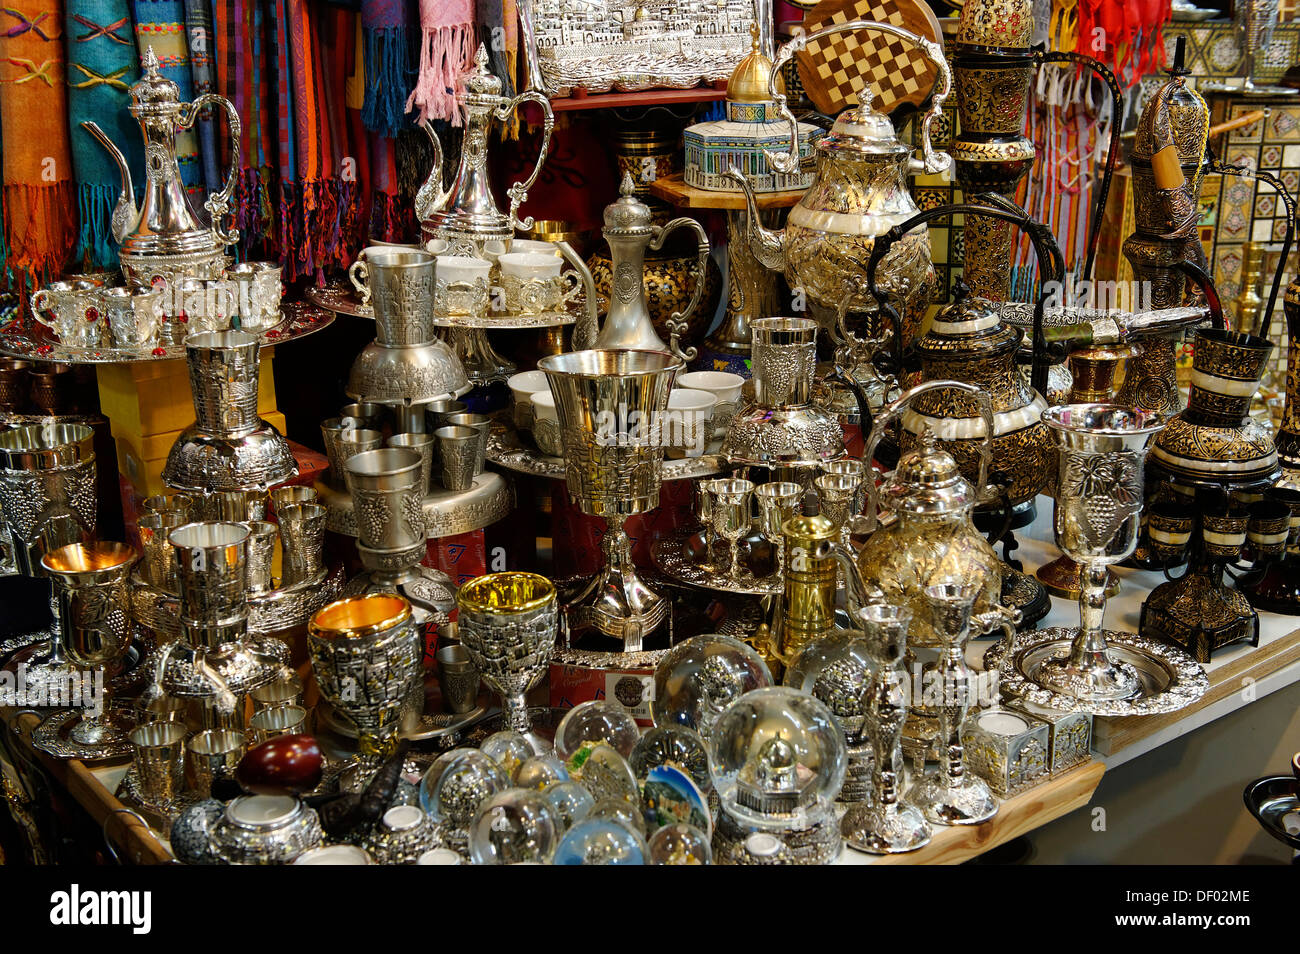 Via Dolorosa, household goods, Bazar, Souk, old town, Jerusalem, Israel, Middle East, Asia - Stock Image